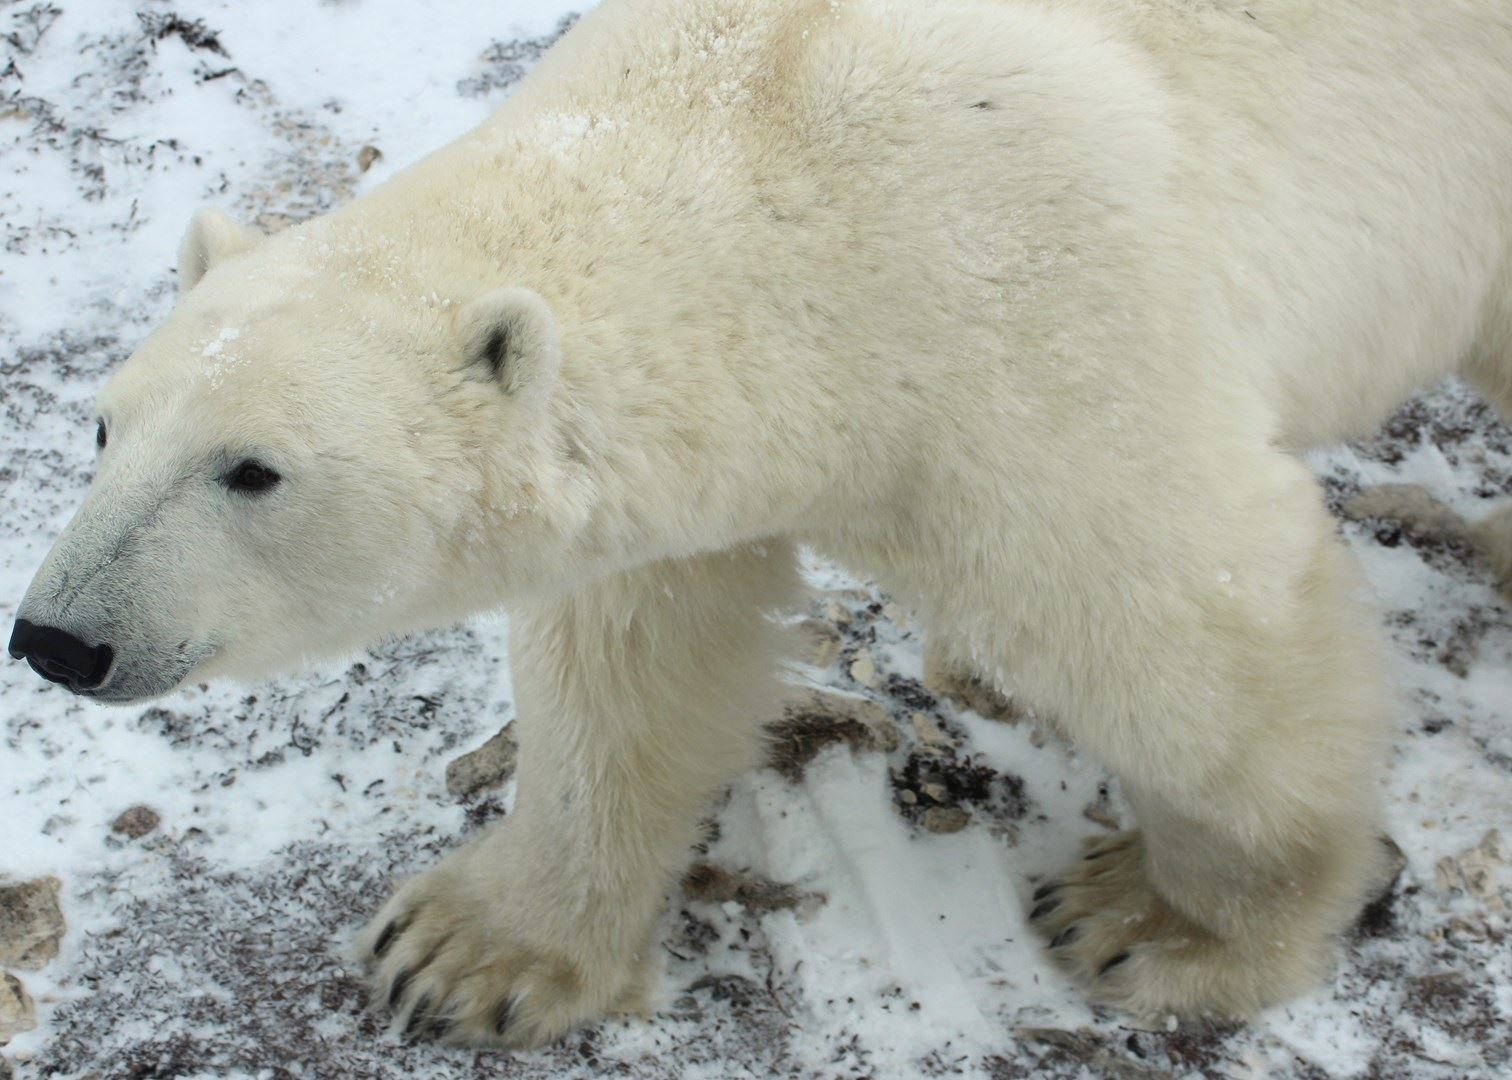 Polar bear watching in Canada   Travel guide   Audley Travel